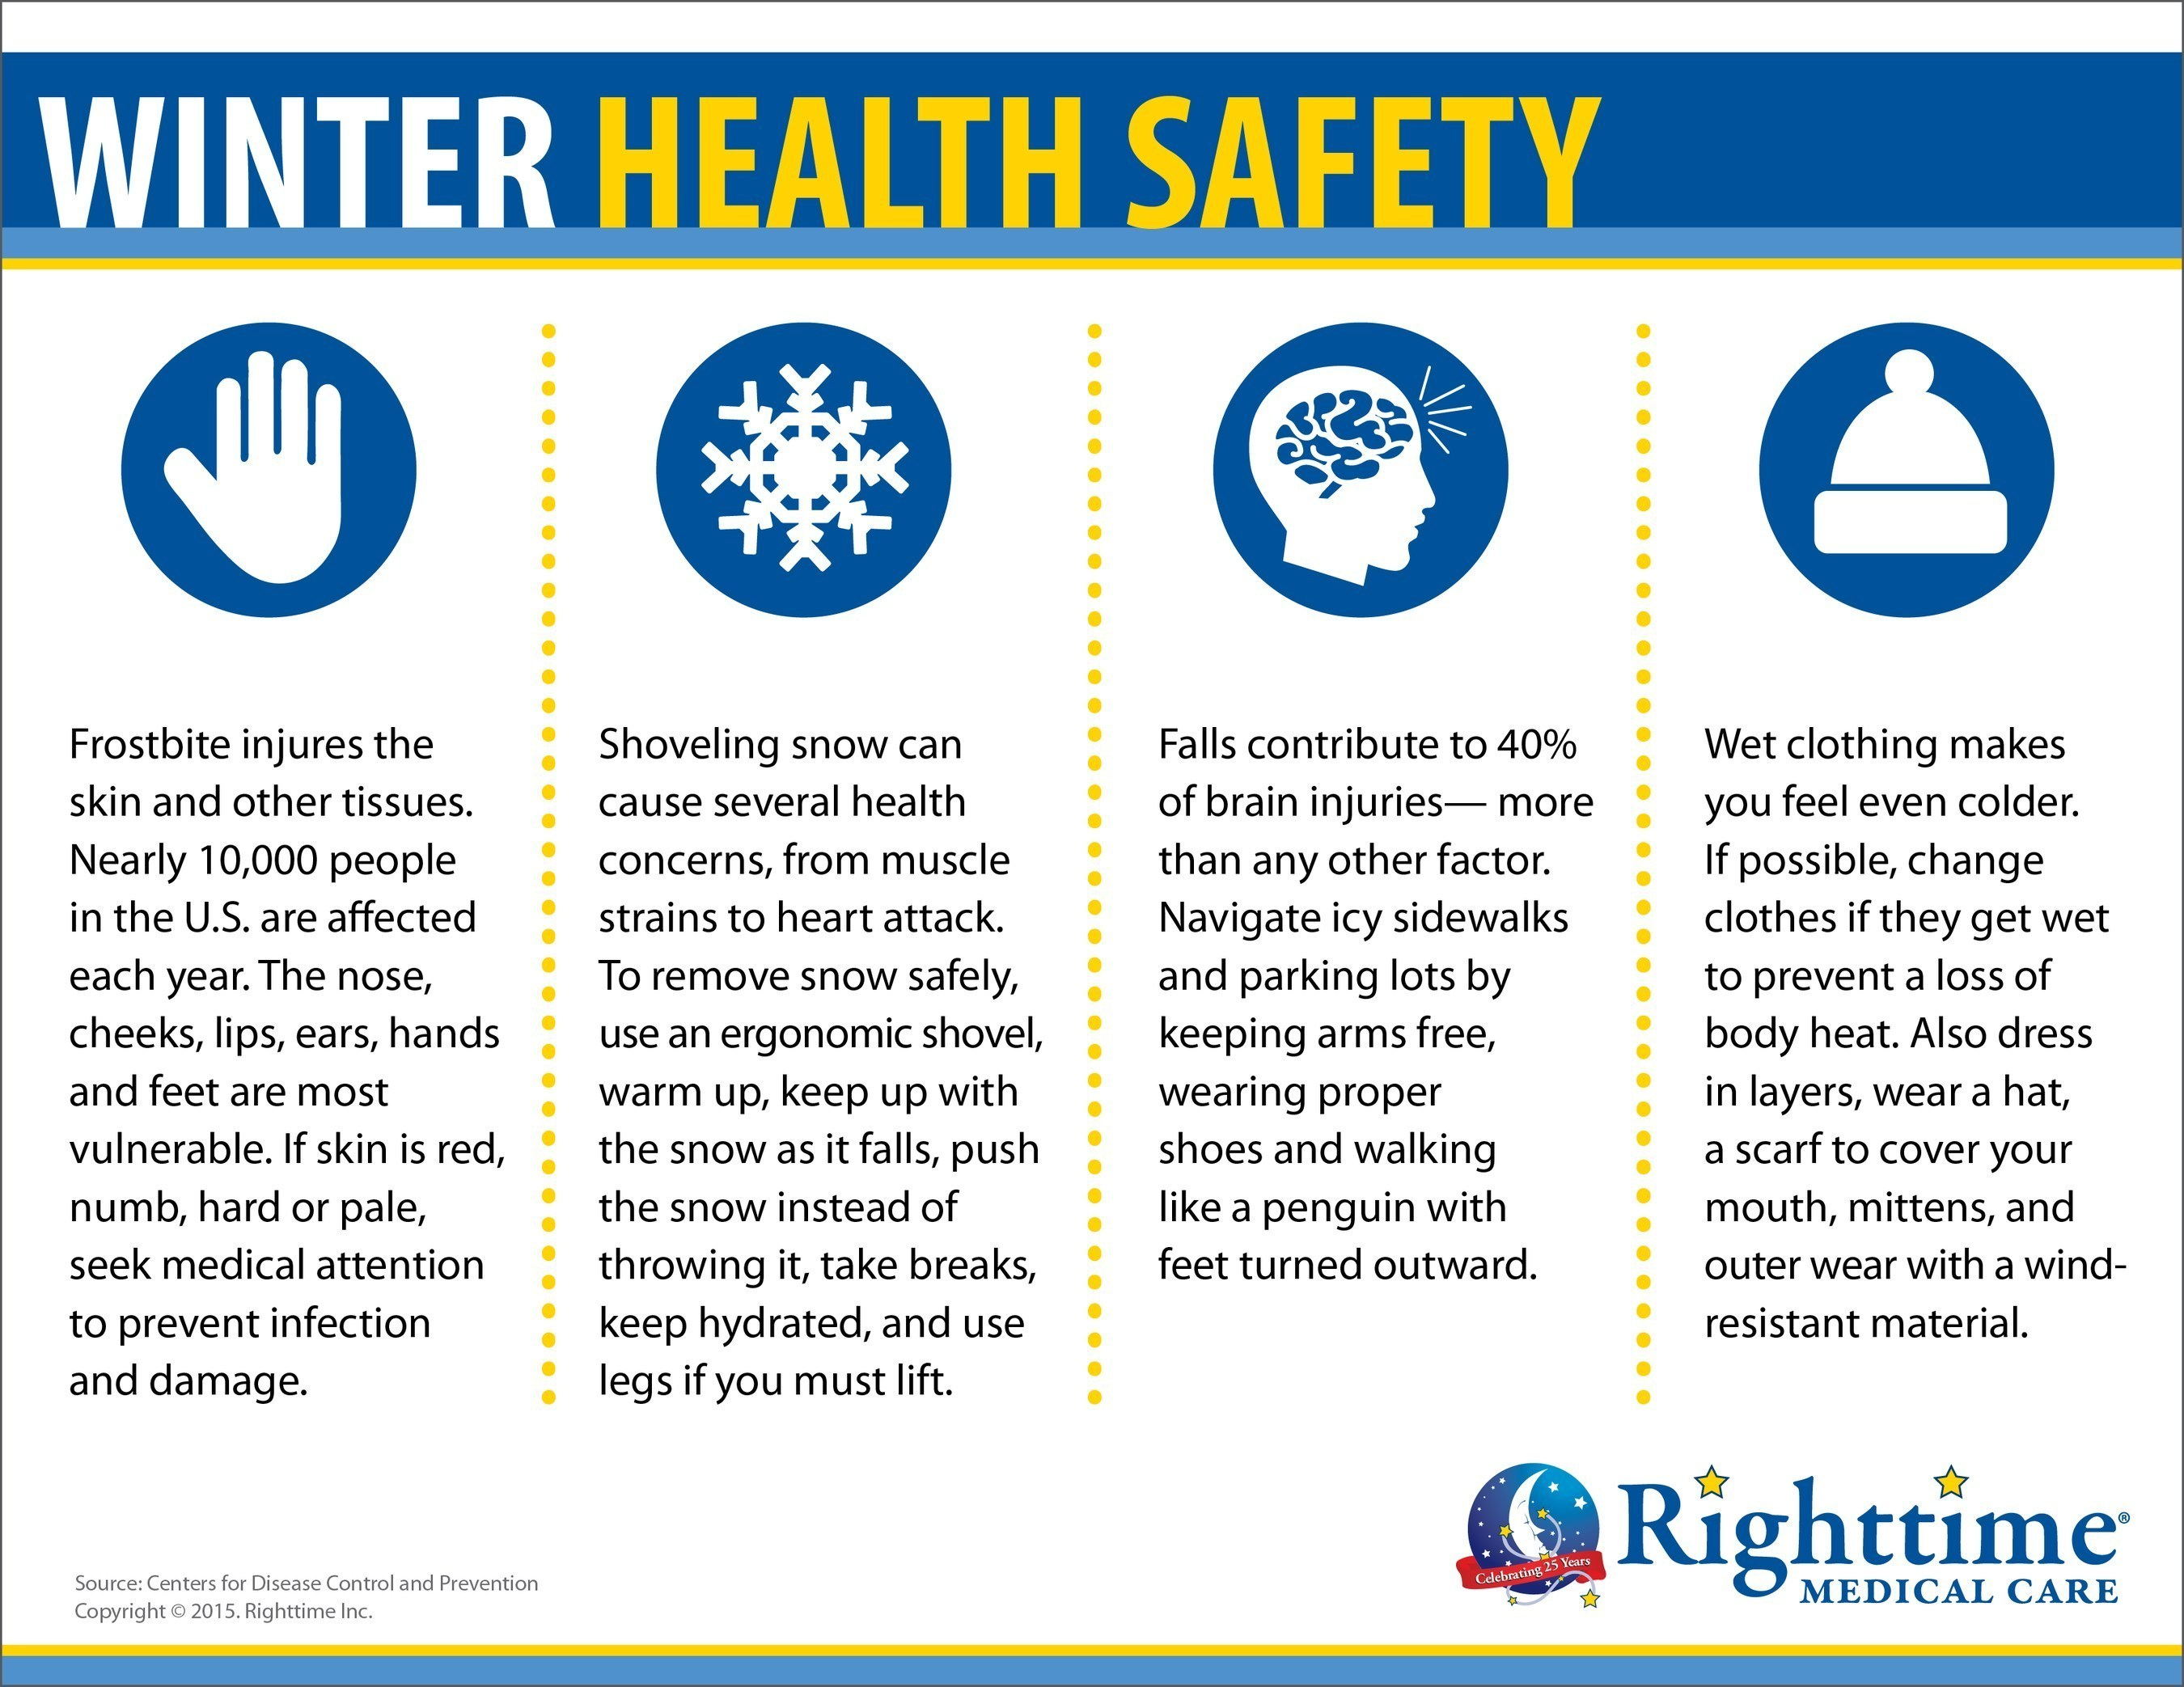 Winter Health Tips recommendations